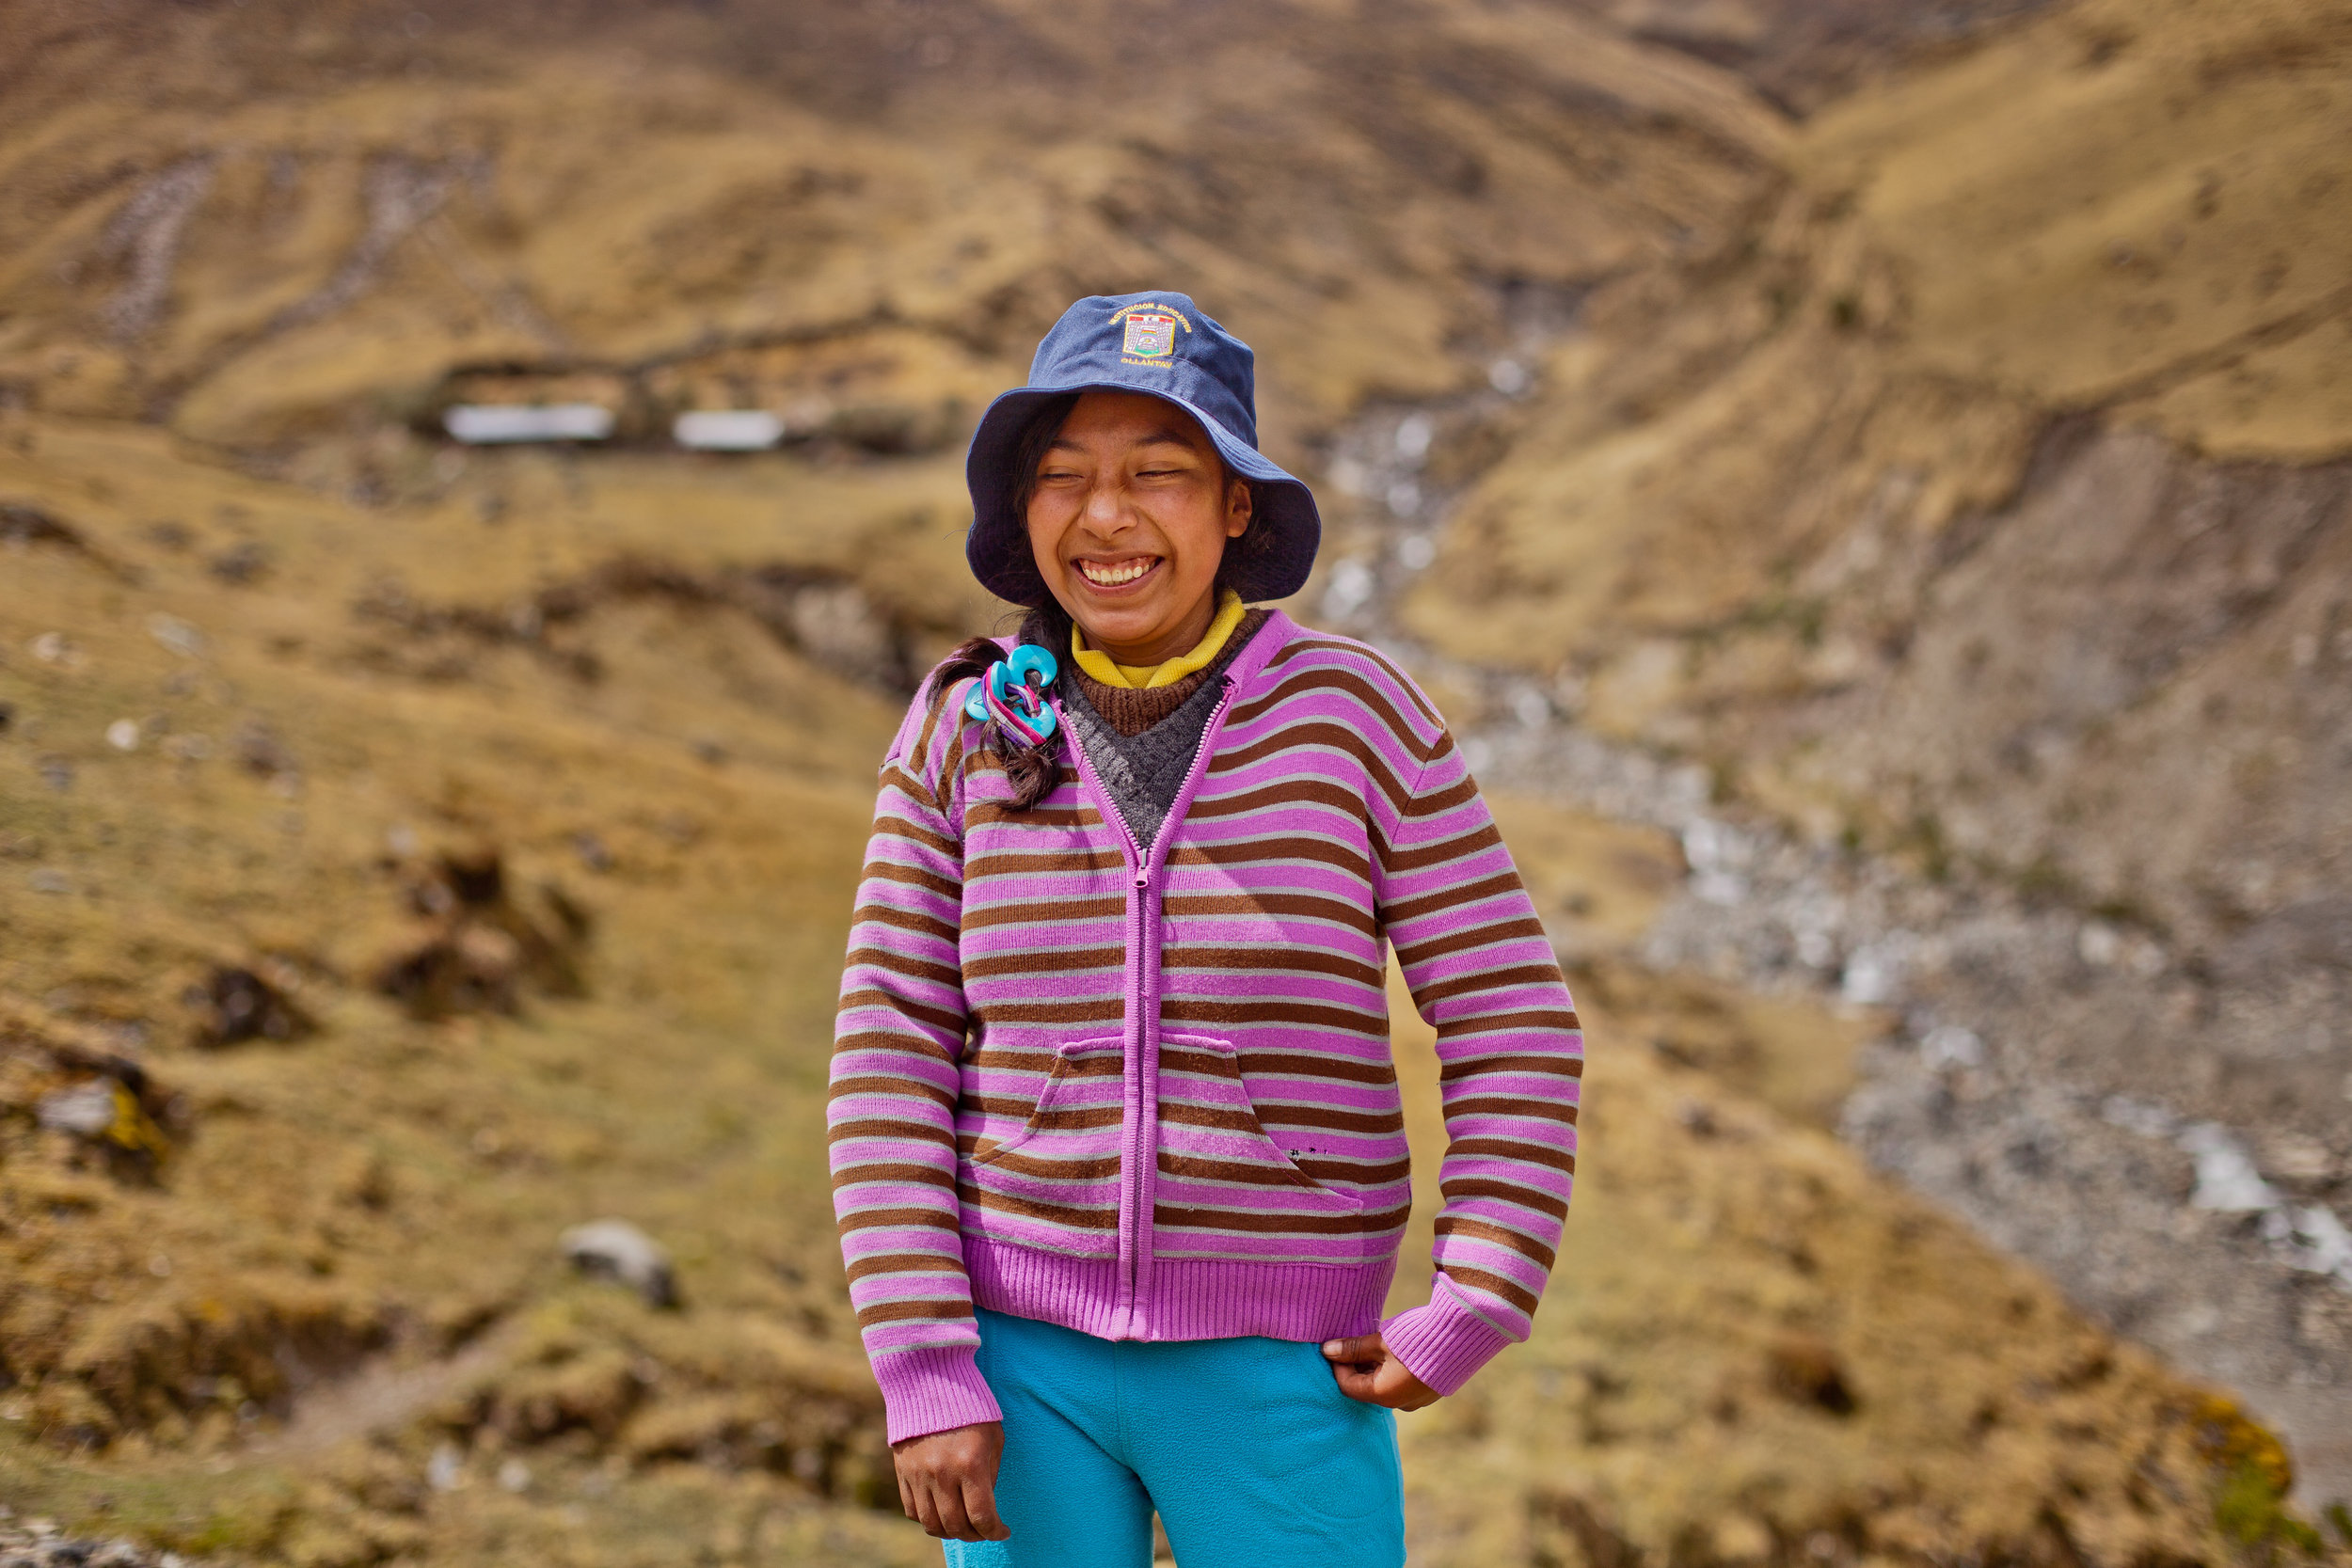 She's the First Scholar Vicentina poses near her home in Peru.